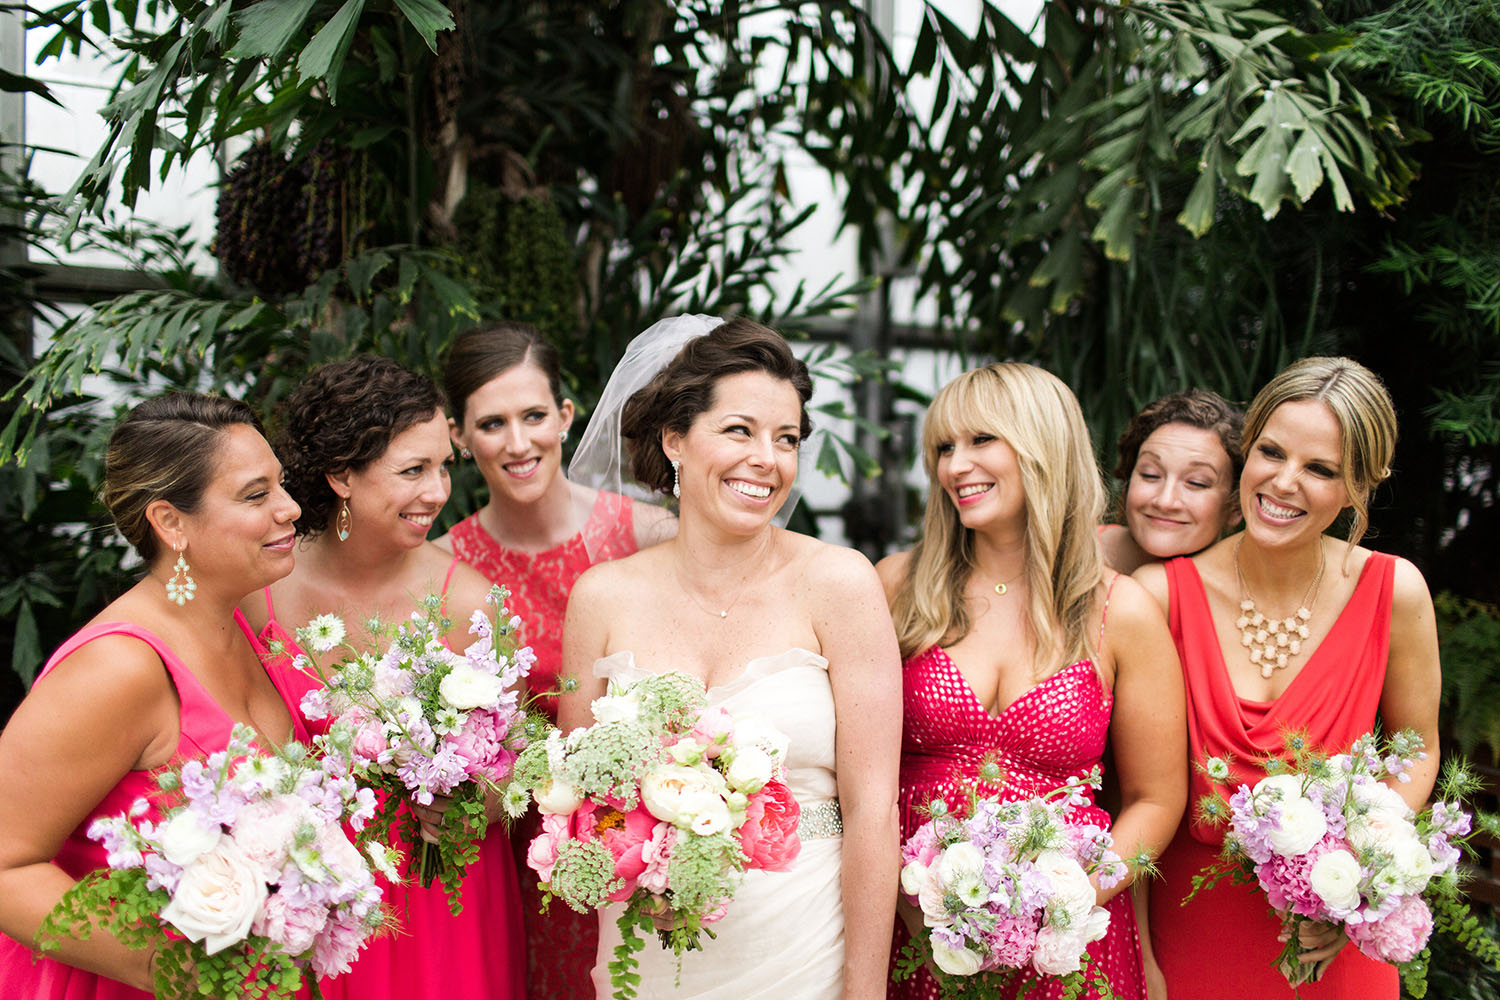 We Laugh We Love Photography  | Wedding Reception | The Horticultural Center,Philadelphia, PA